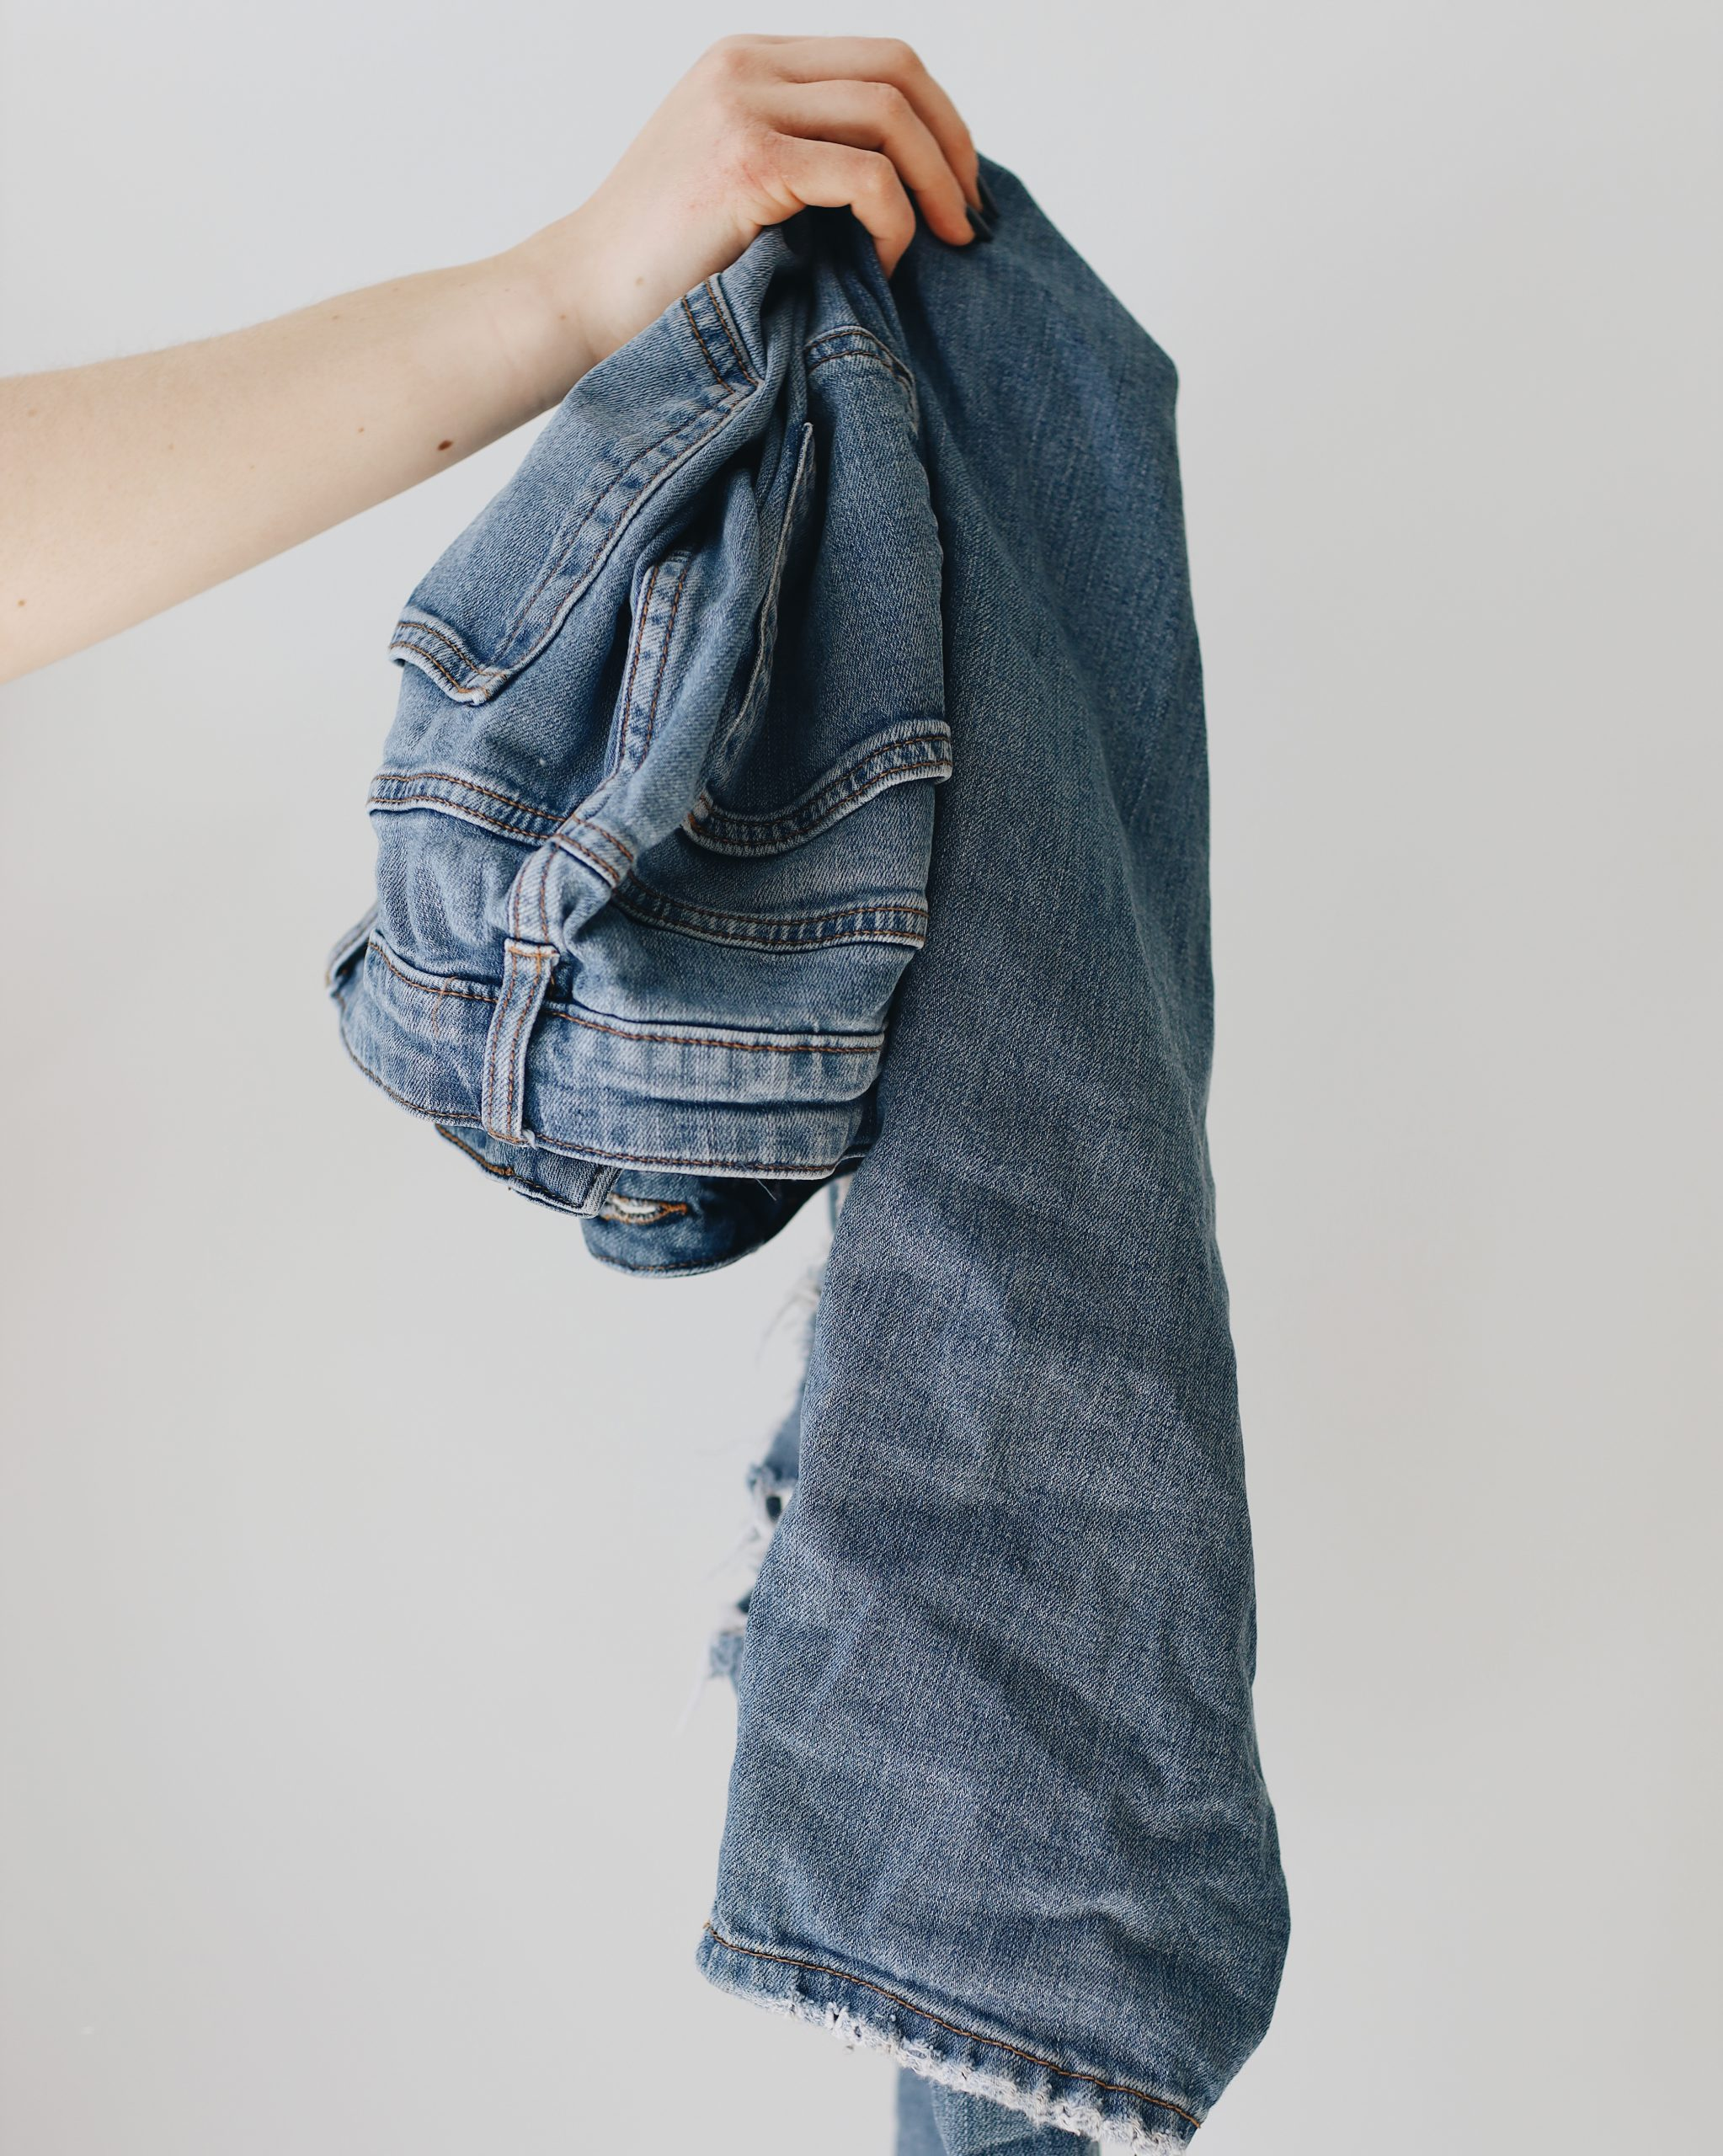 How To Properly Wash And Dry Your Jeans